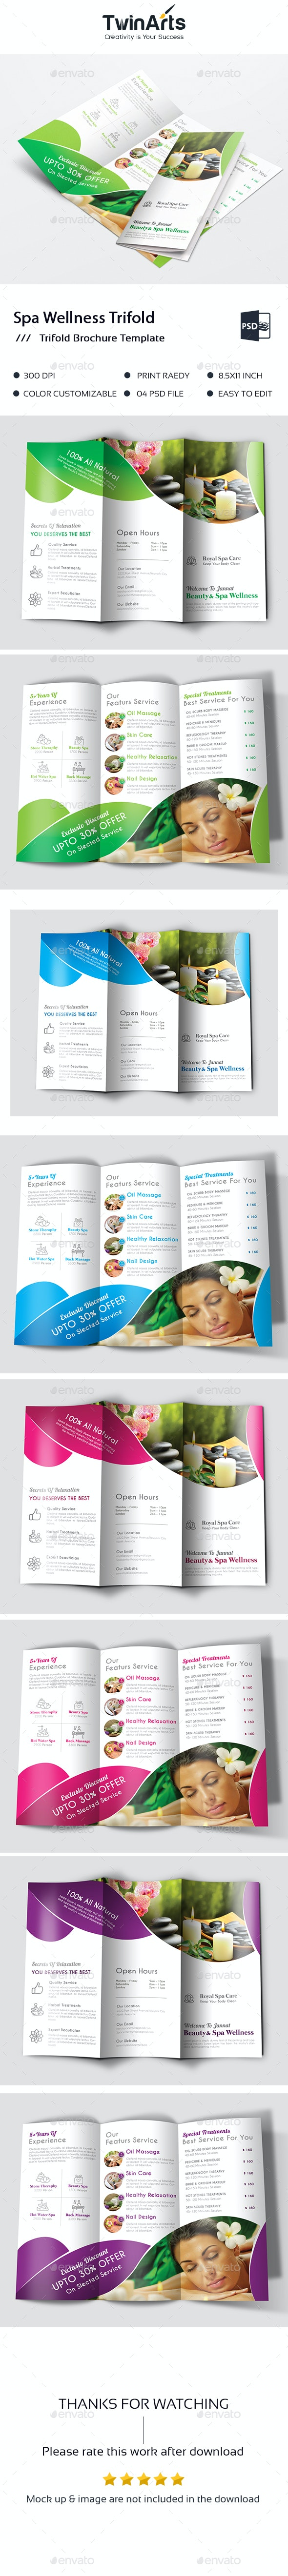 Spa Wellness Trifold Brochure. - Brochures Print Templates